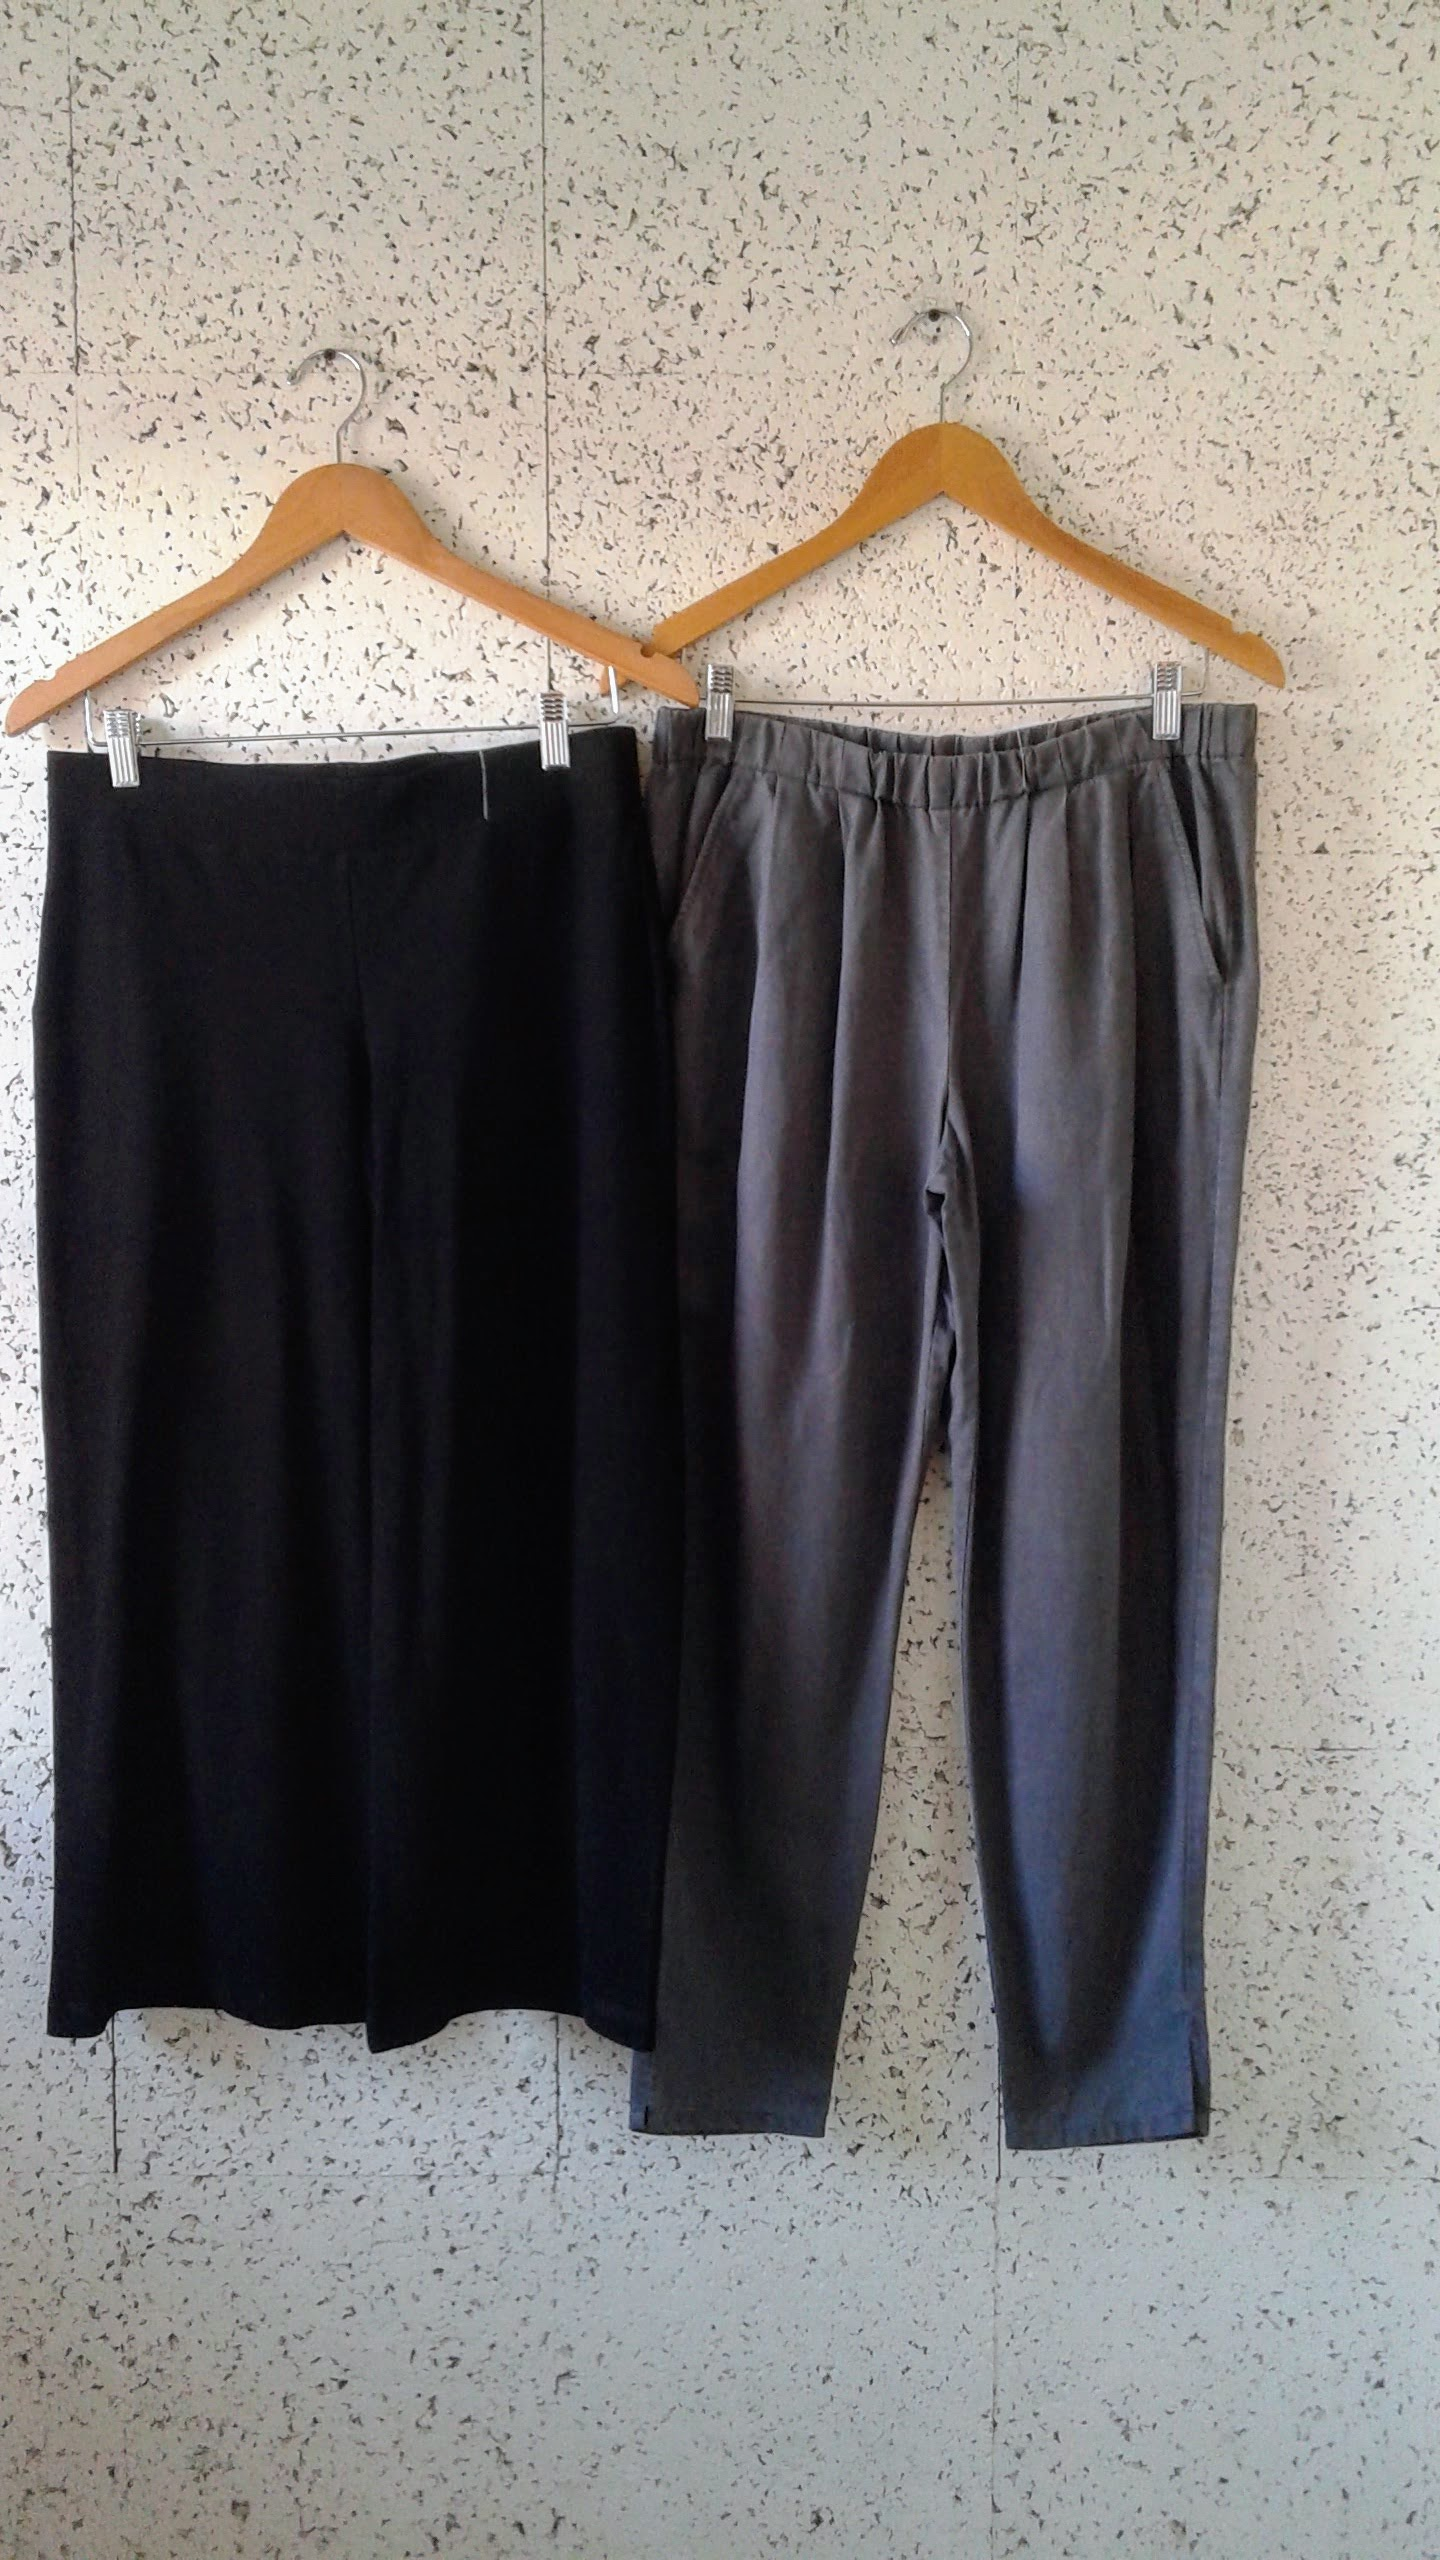 Eileen Fisher black pants; Size S, $40. Eileen Fisher grey pants; Size M, $40